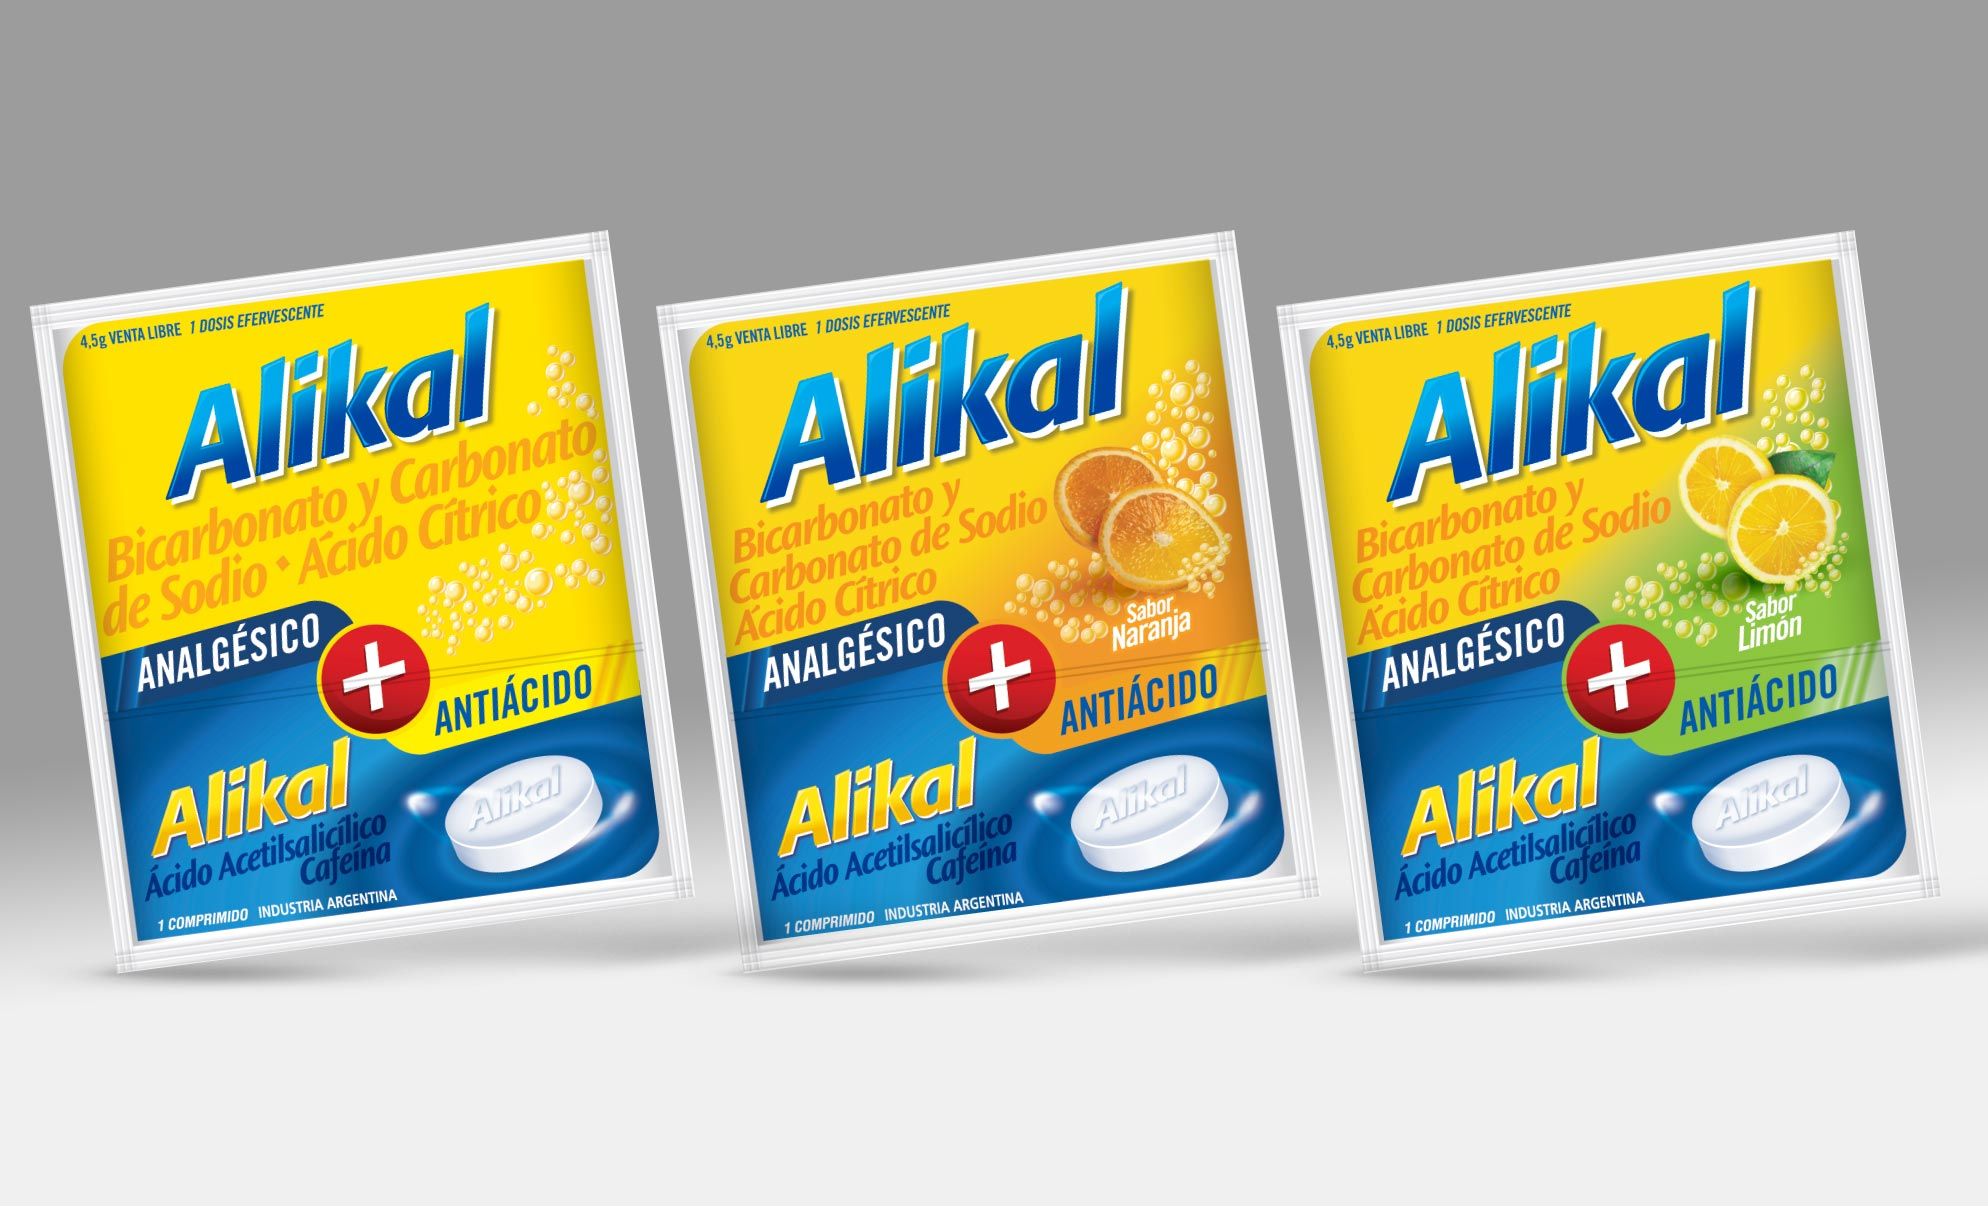 Glaxosmithkline Alikal Packagings Envases